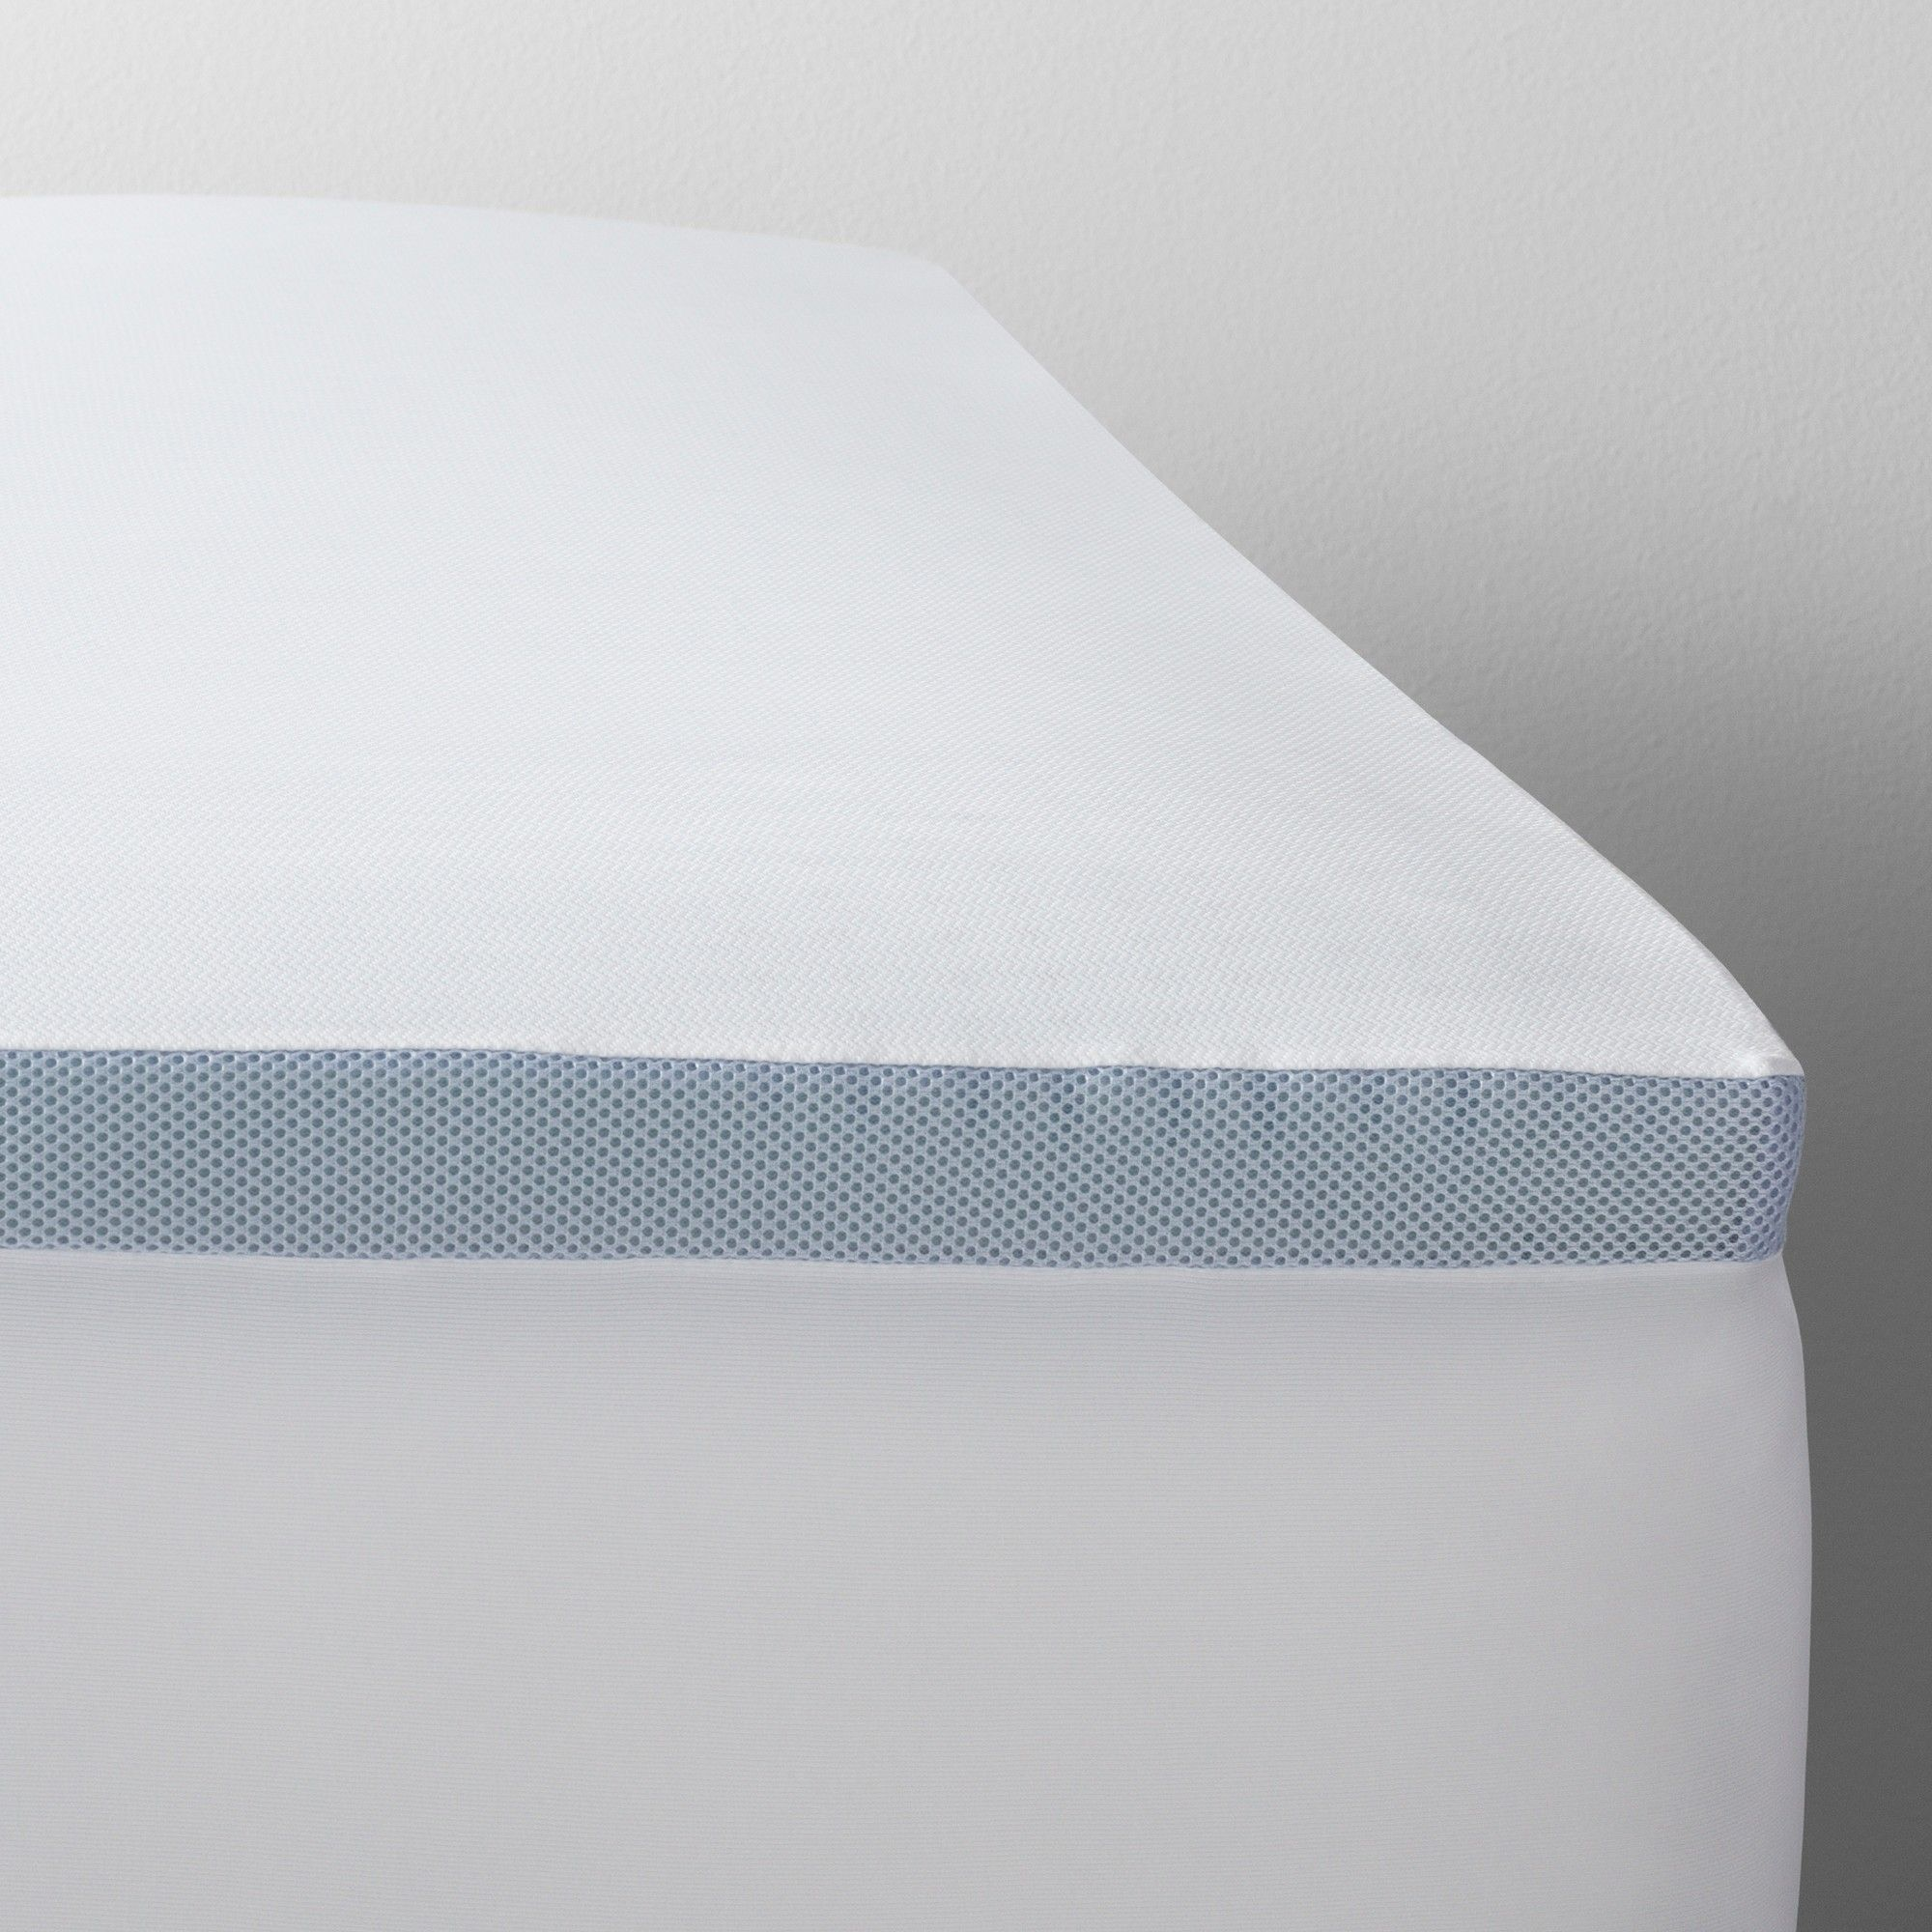 Full 2 Cooling Gel Mattress Topper White Made By Design Gel